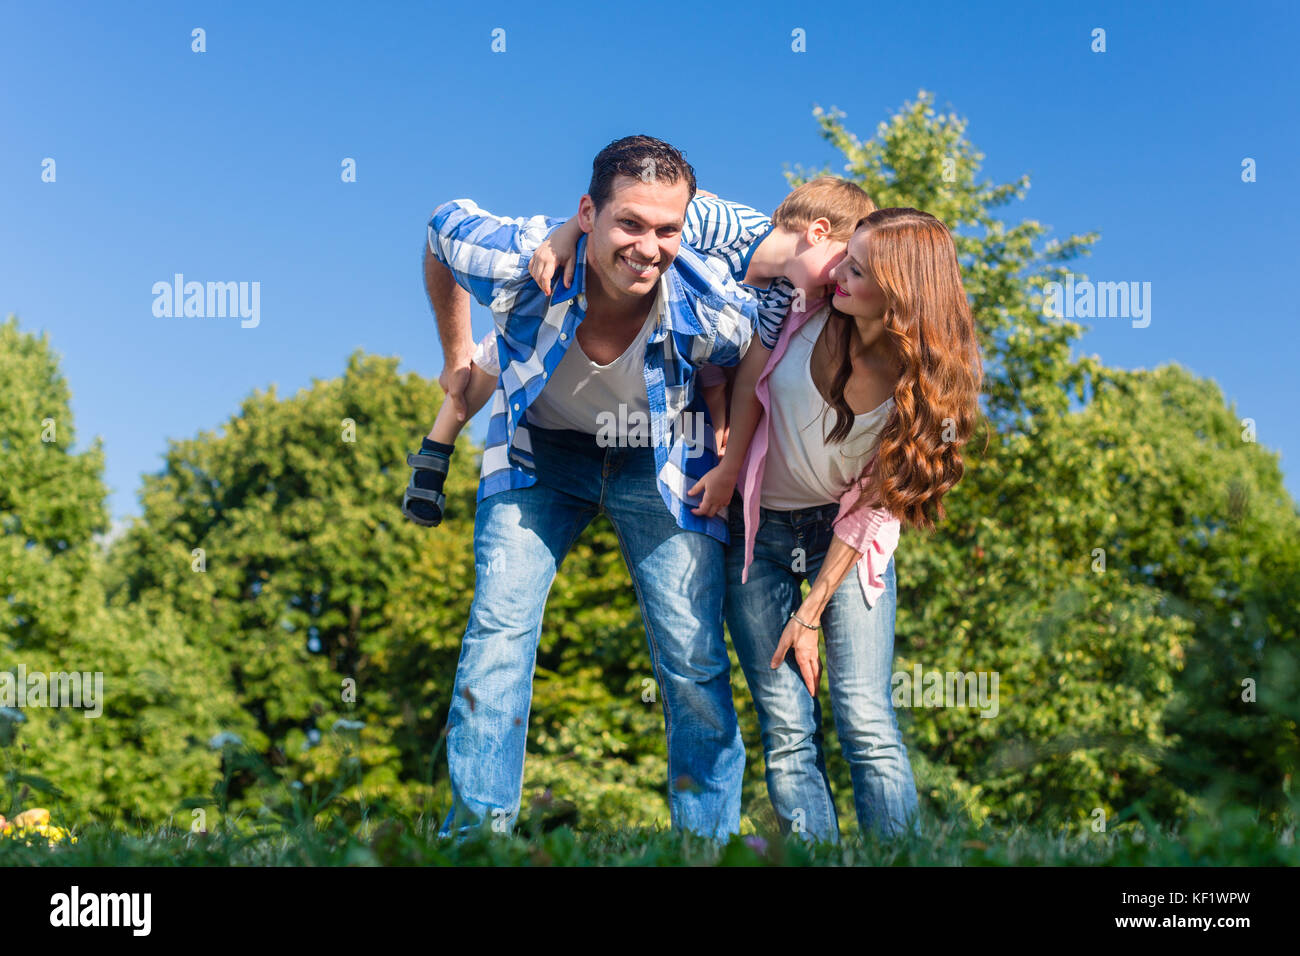 Daddy carrying son piggyback on his back  - Stock Image